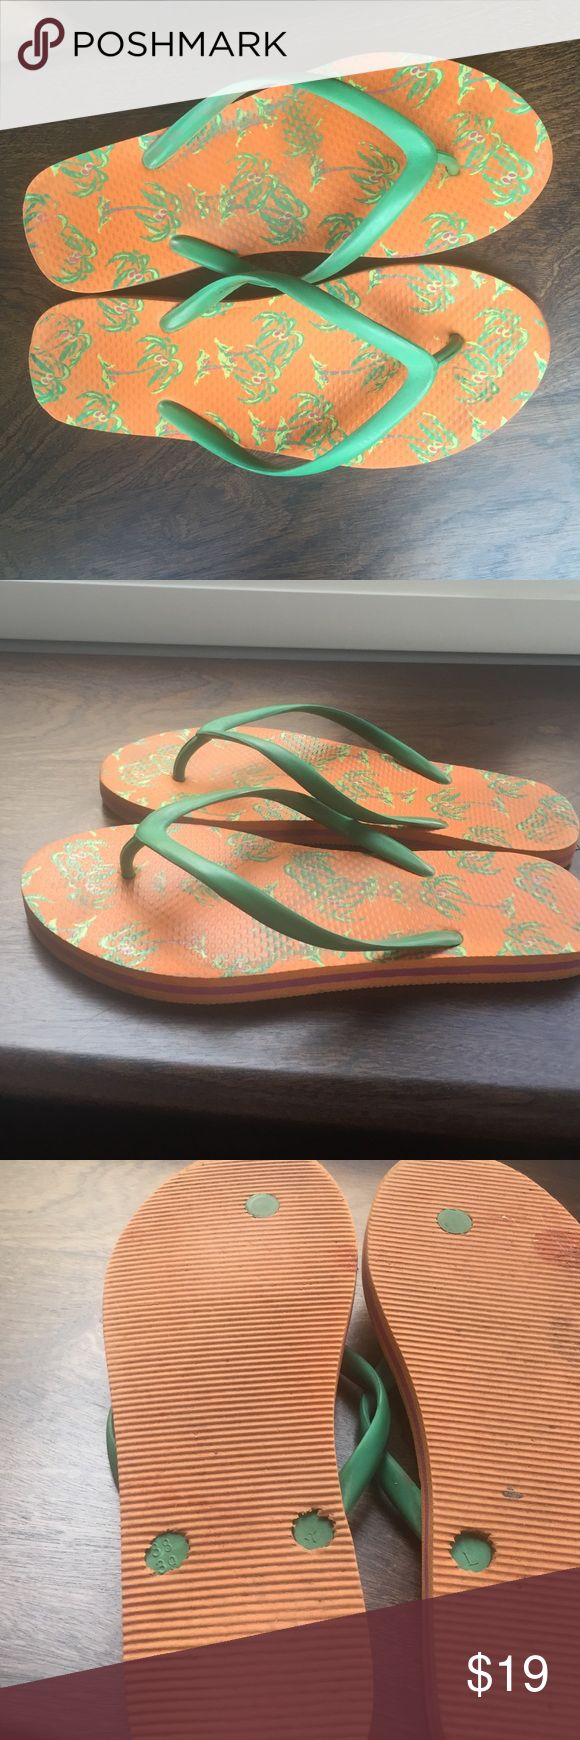 Havana Flip Flops Green and Pink Palm Trees Decorate these Orange Soul Flip Flops with Green Foot Band. How Fun are These for Summer Days and Nights! Great Condition.🌞 Havaianas Shoes Sandals